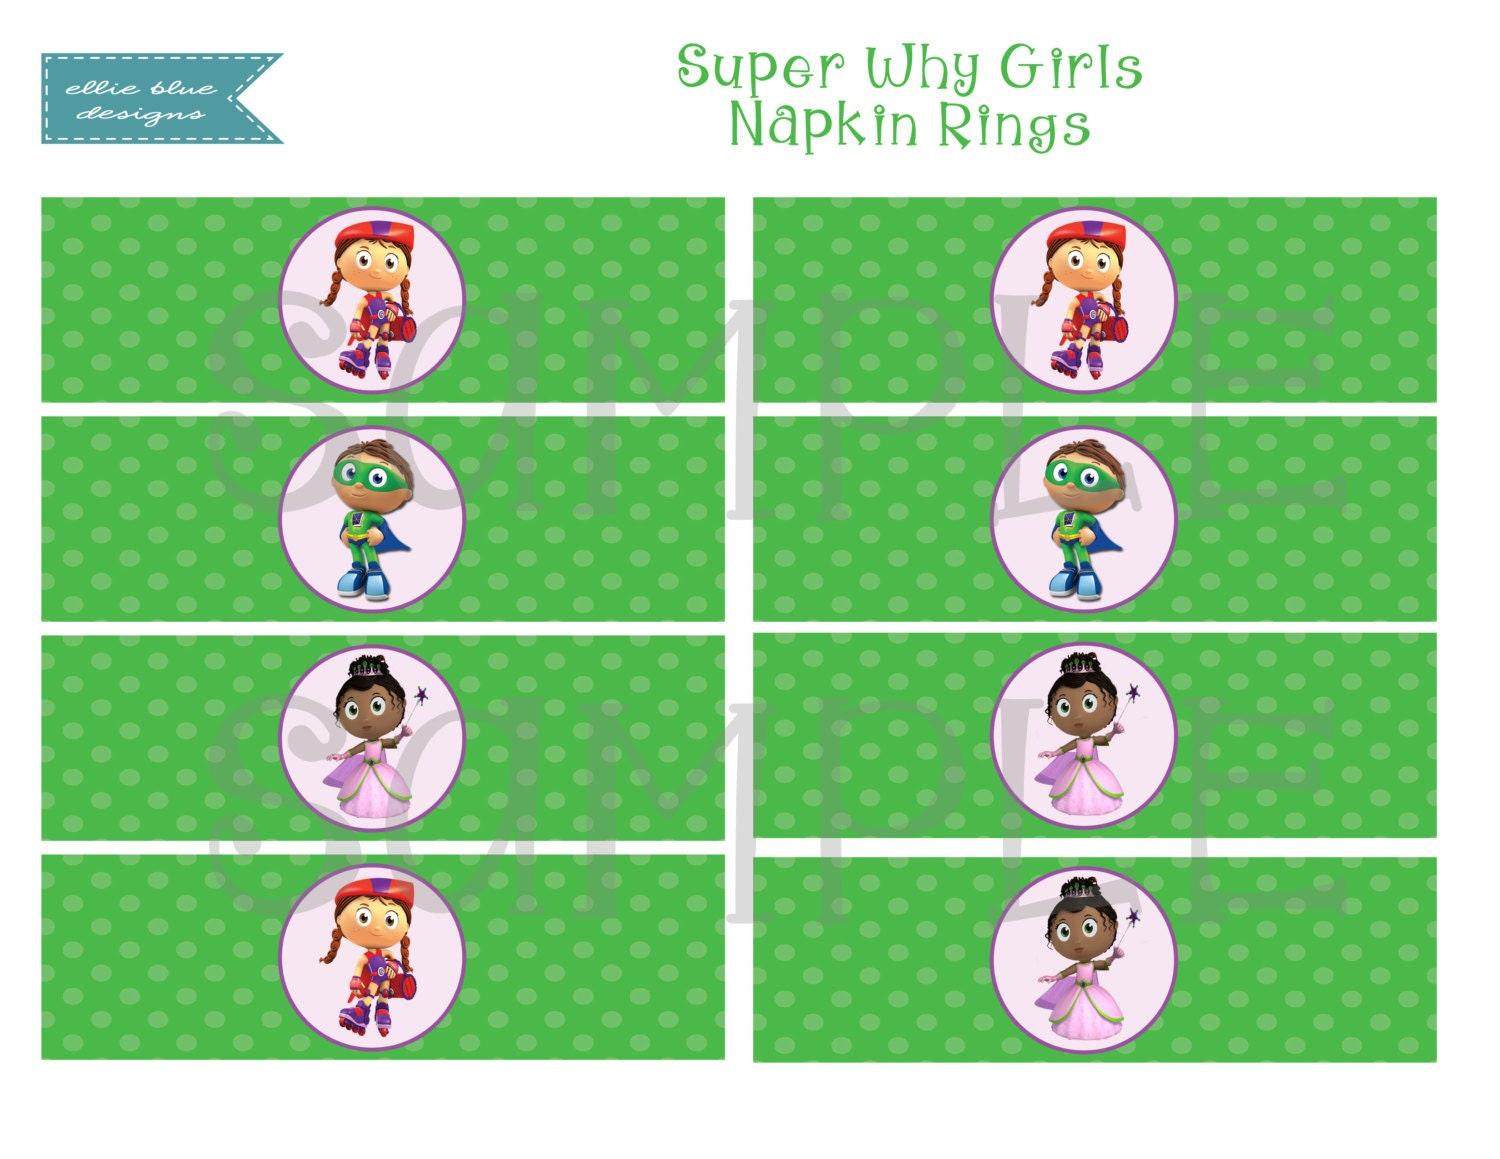 It's just an image of Clean Super Why Printables